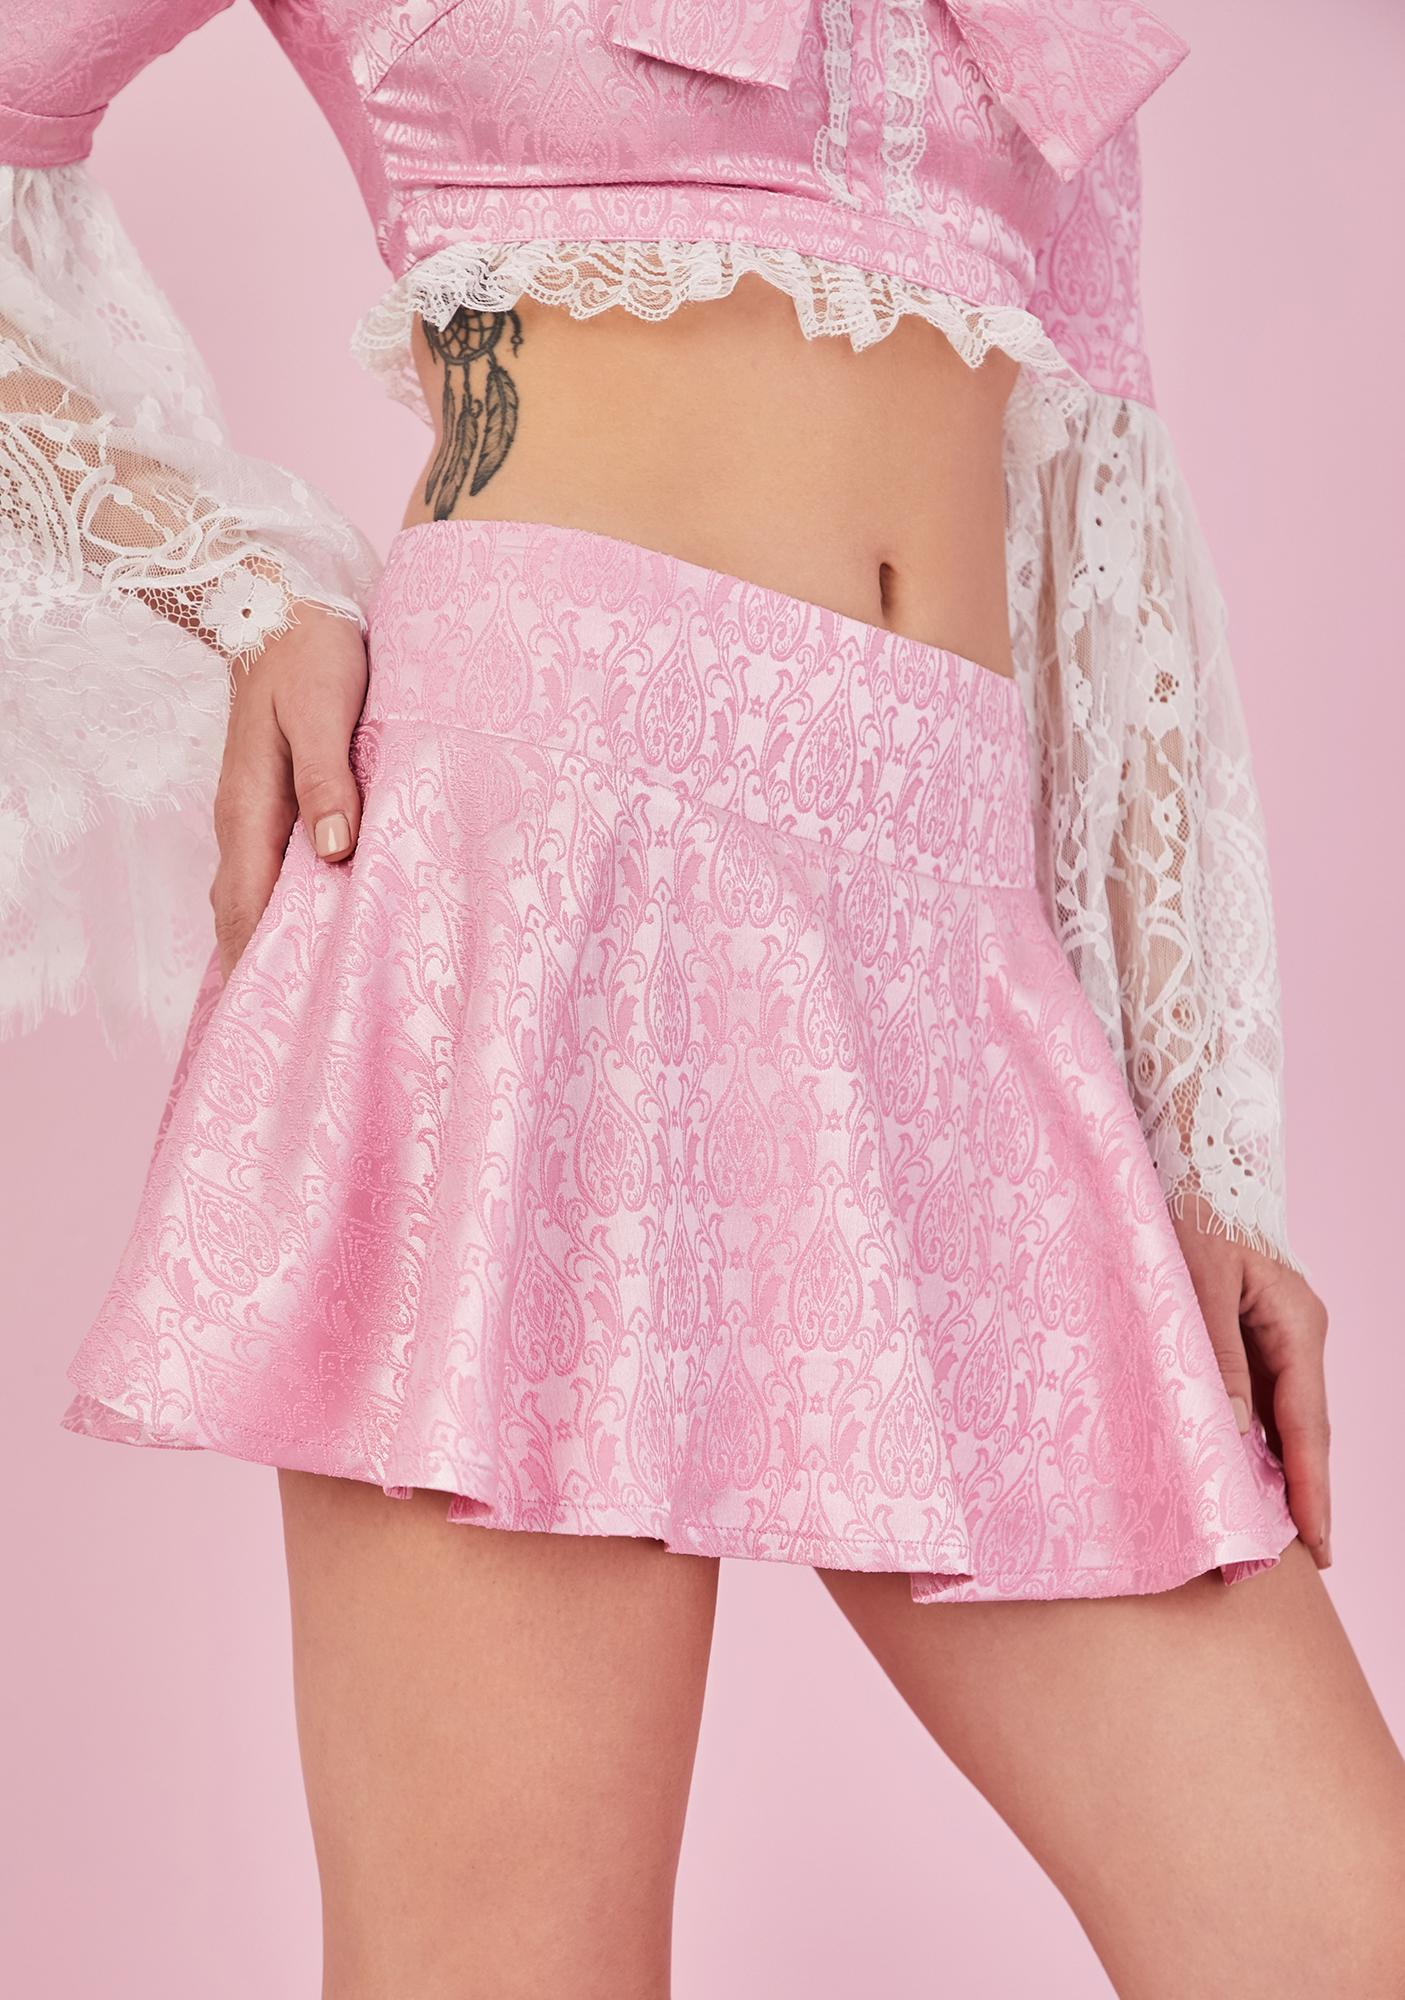 Sugar Thrillz Princess Perfection Tapestry Skirt